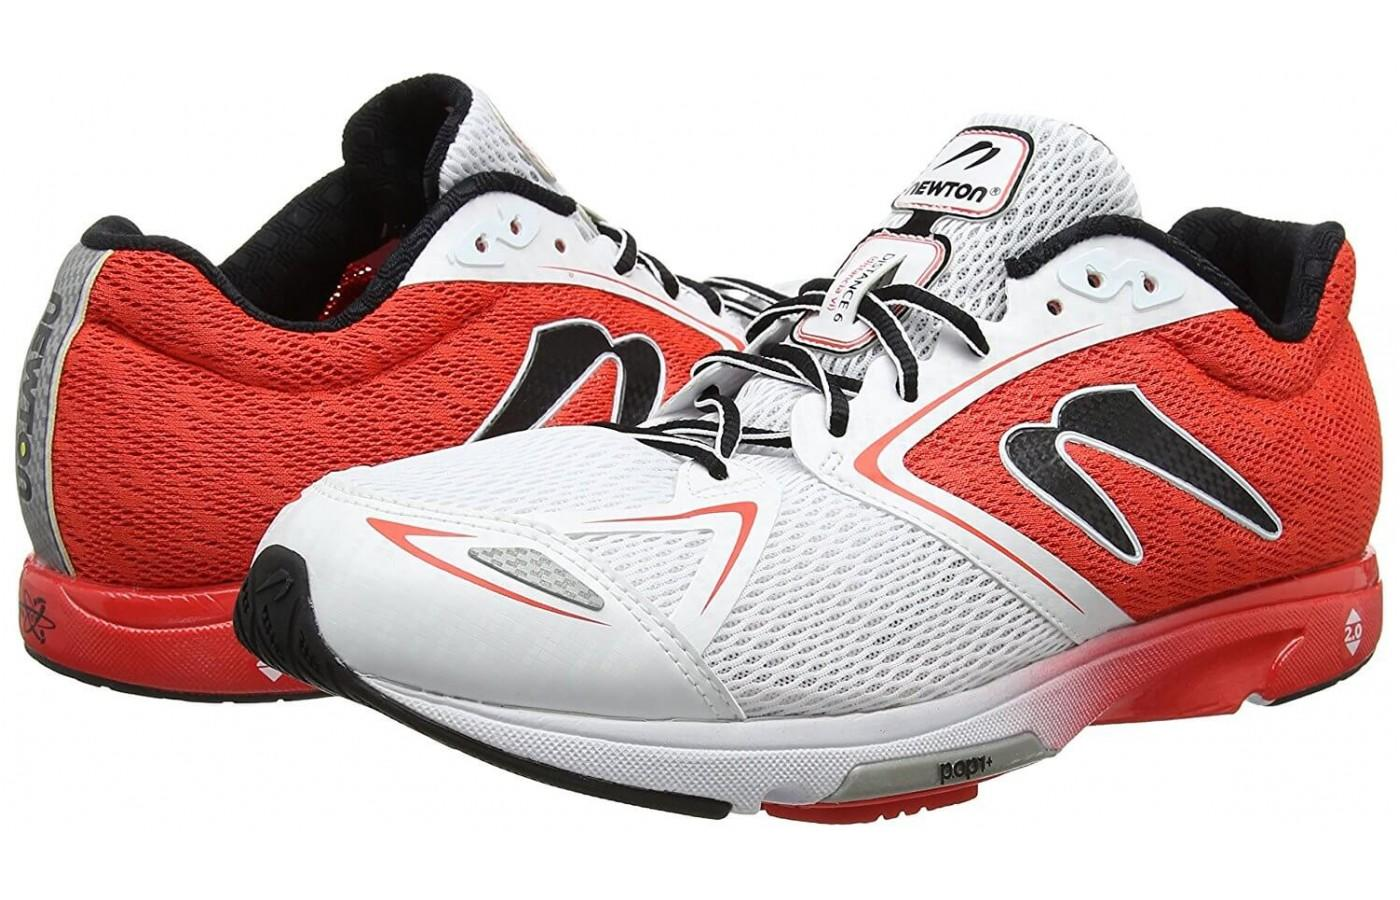 The Newton Distance 6 mesh construction keeps the foot ventilated